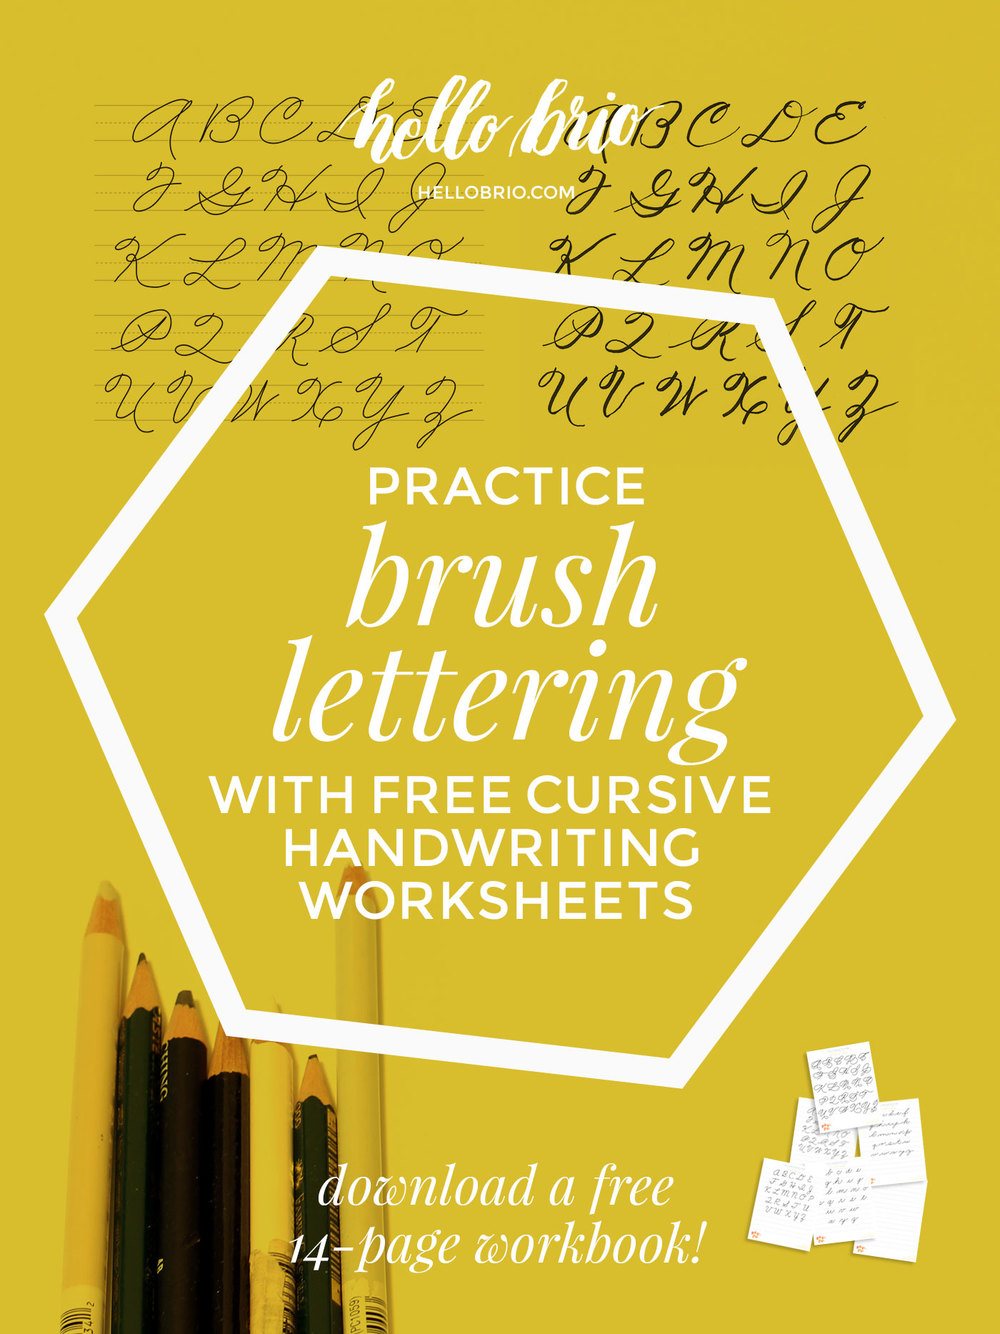 Uncategorized Free Make Your Own Handwriting Worksheets practice brush lettering with cursive handwriting worksheets learn and free develop your personal style